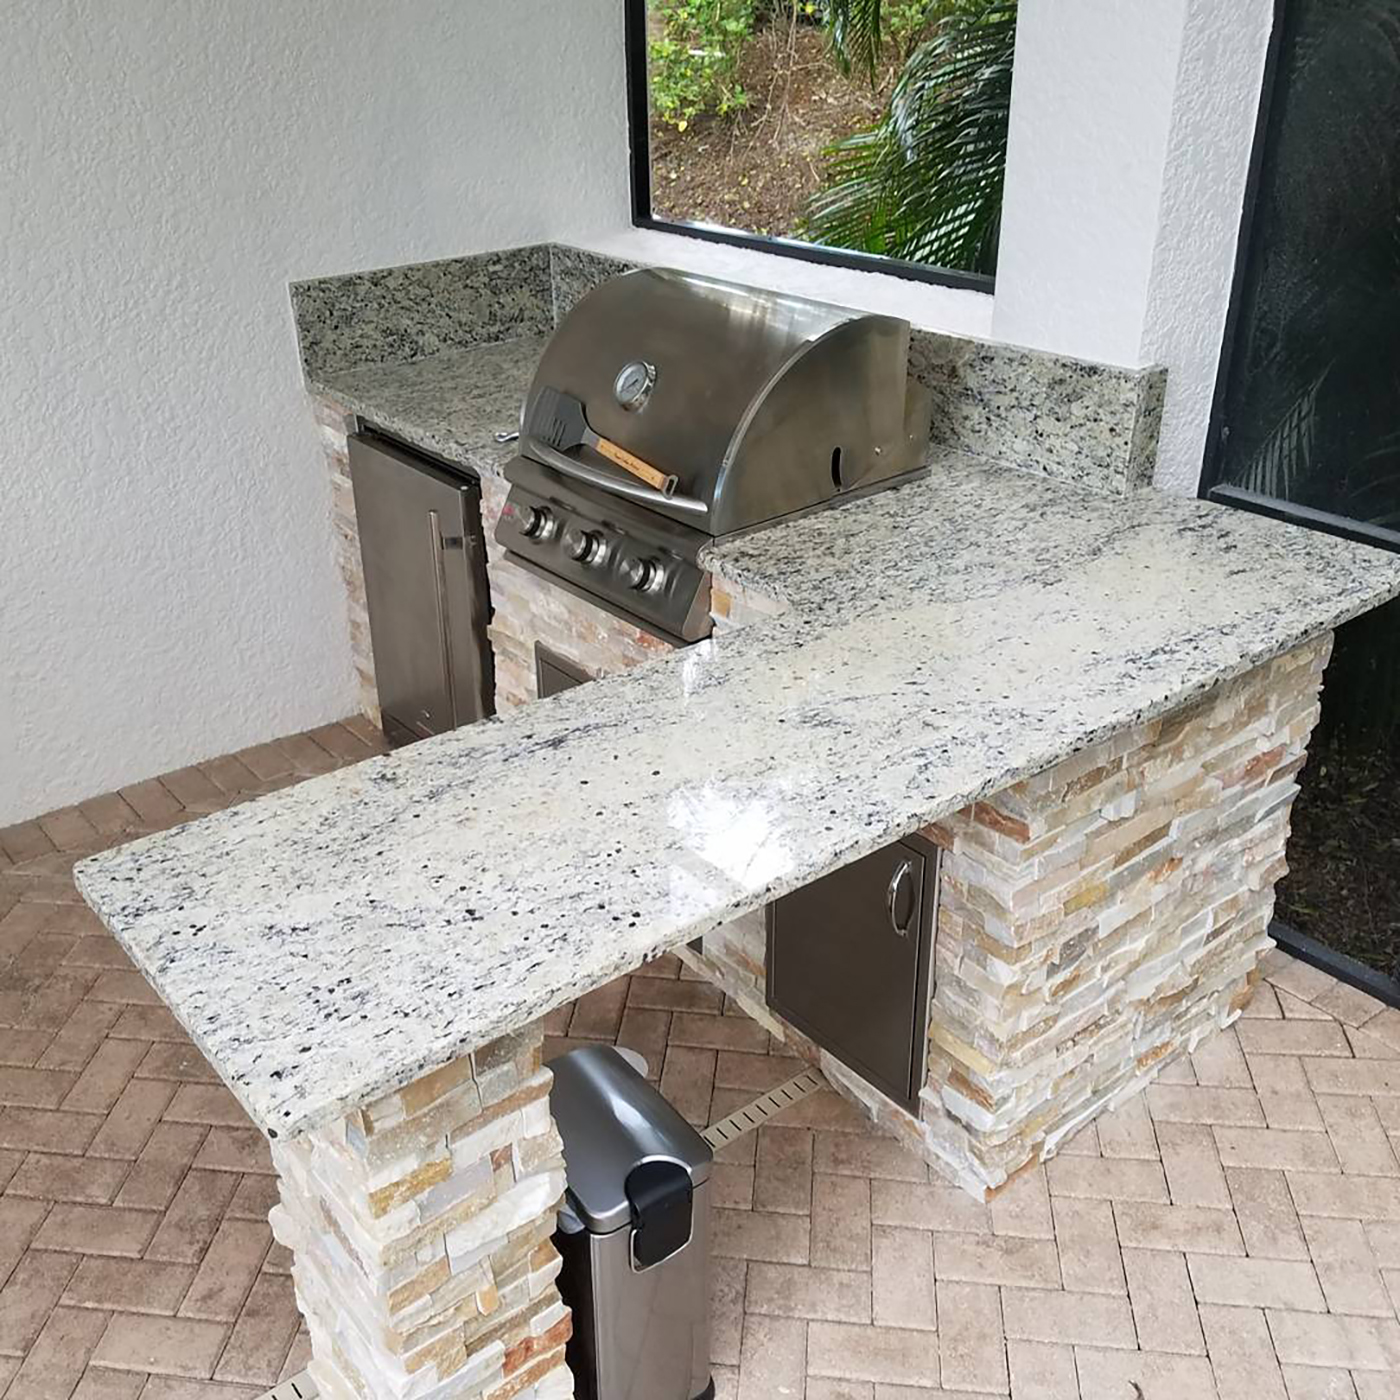 Outdoor Kitchen Construction Archives - Elegant Outdoor Kitchens